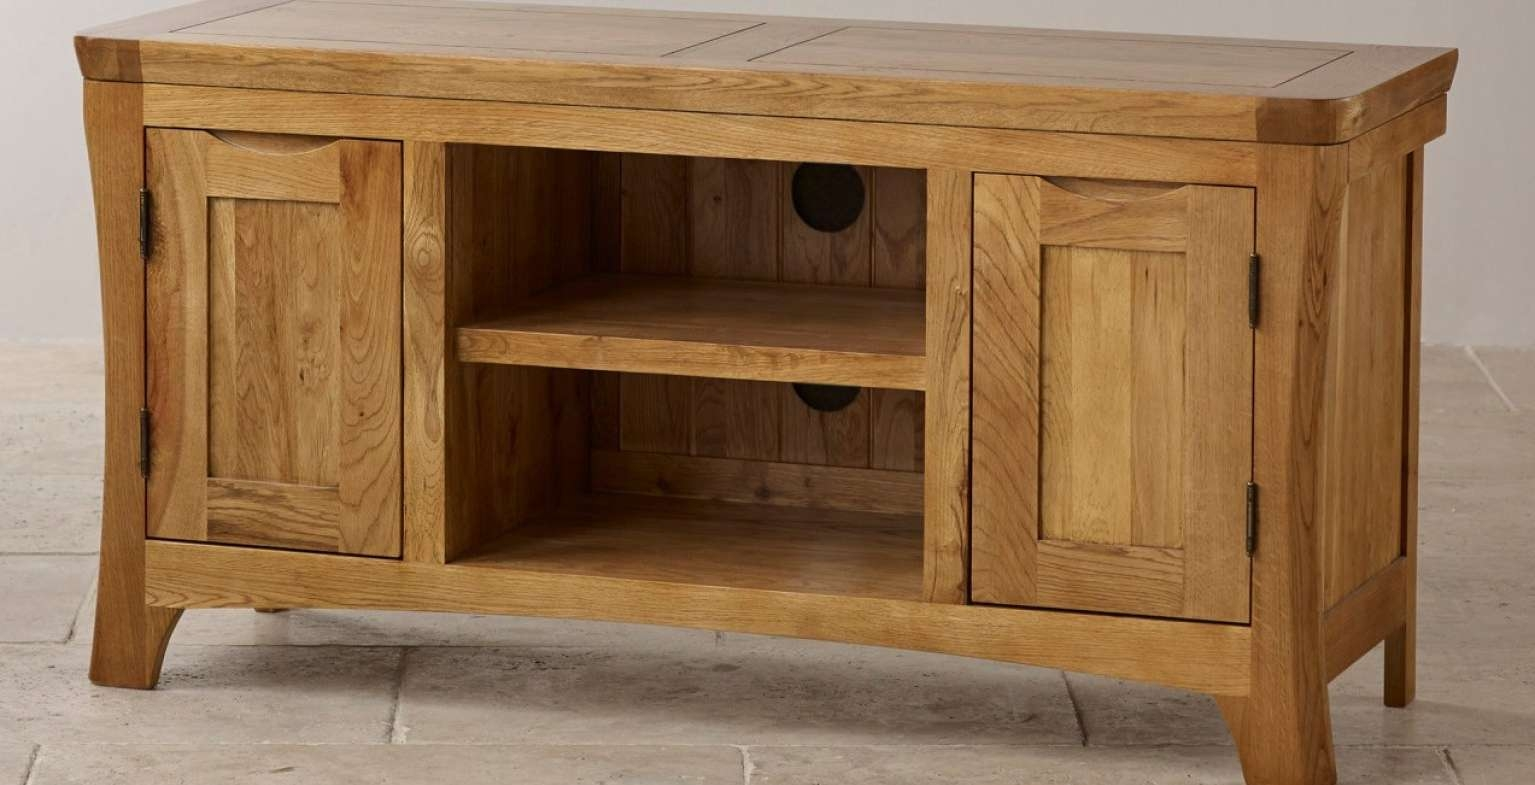 Tv : 41 Stunning 40 Inch Tv Stand Wood Photos Concept Stunning Intended For Real Wood Corner Tv Stands (View 11 of 15)